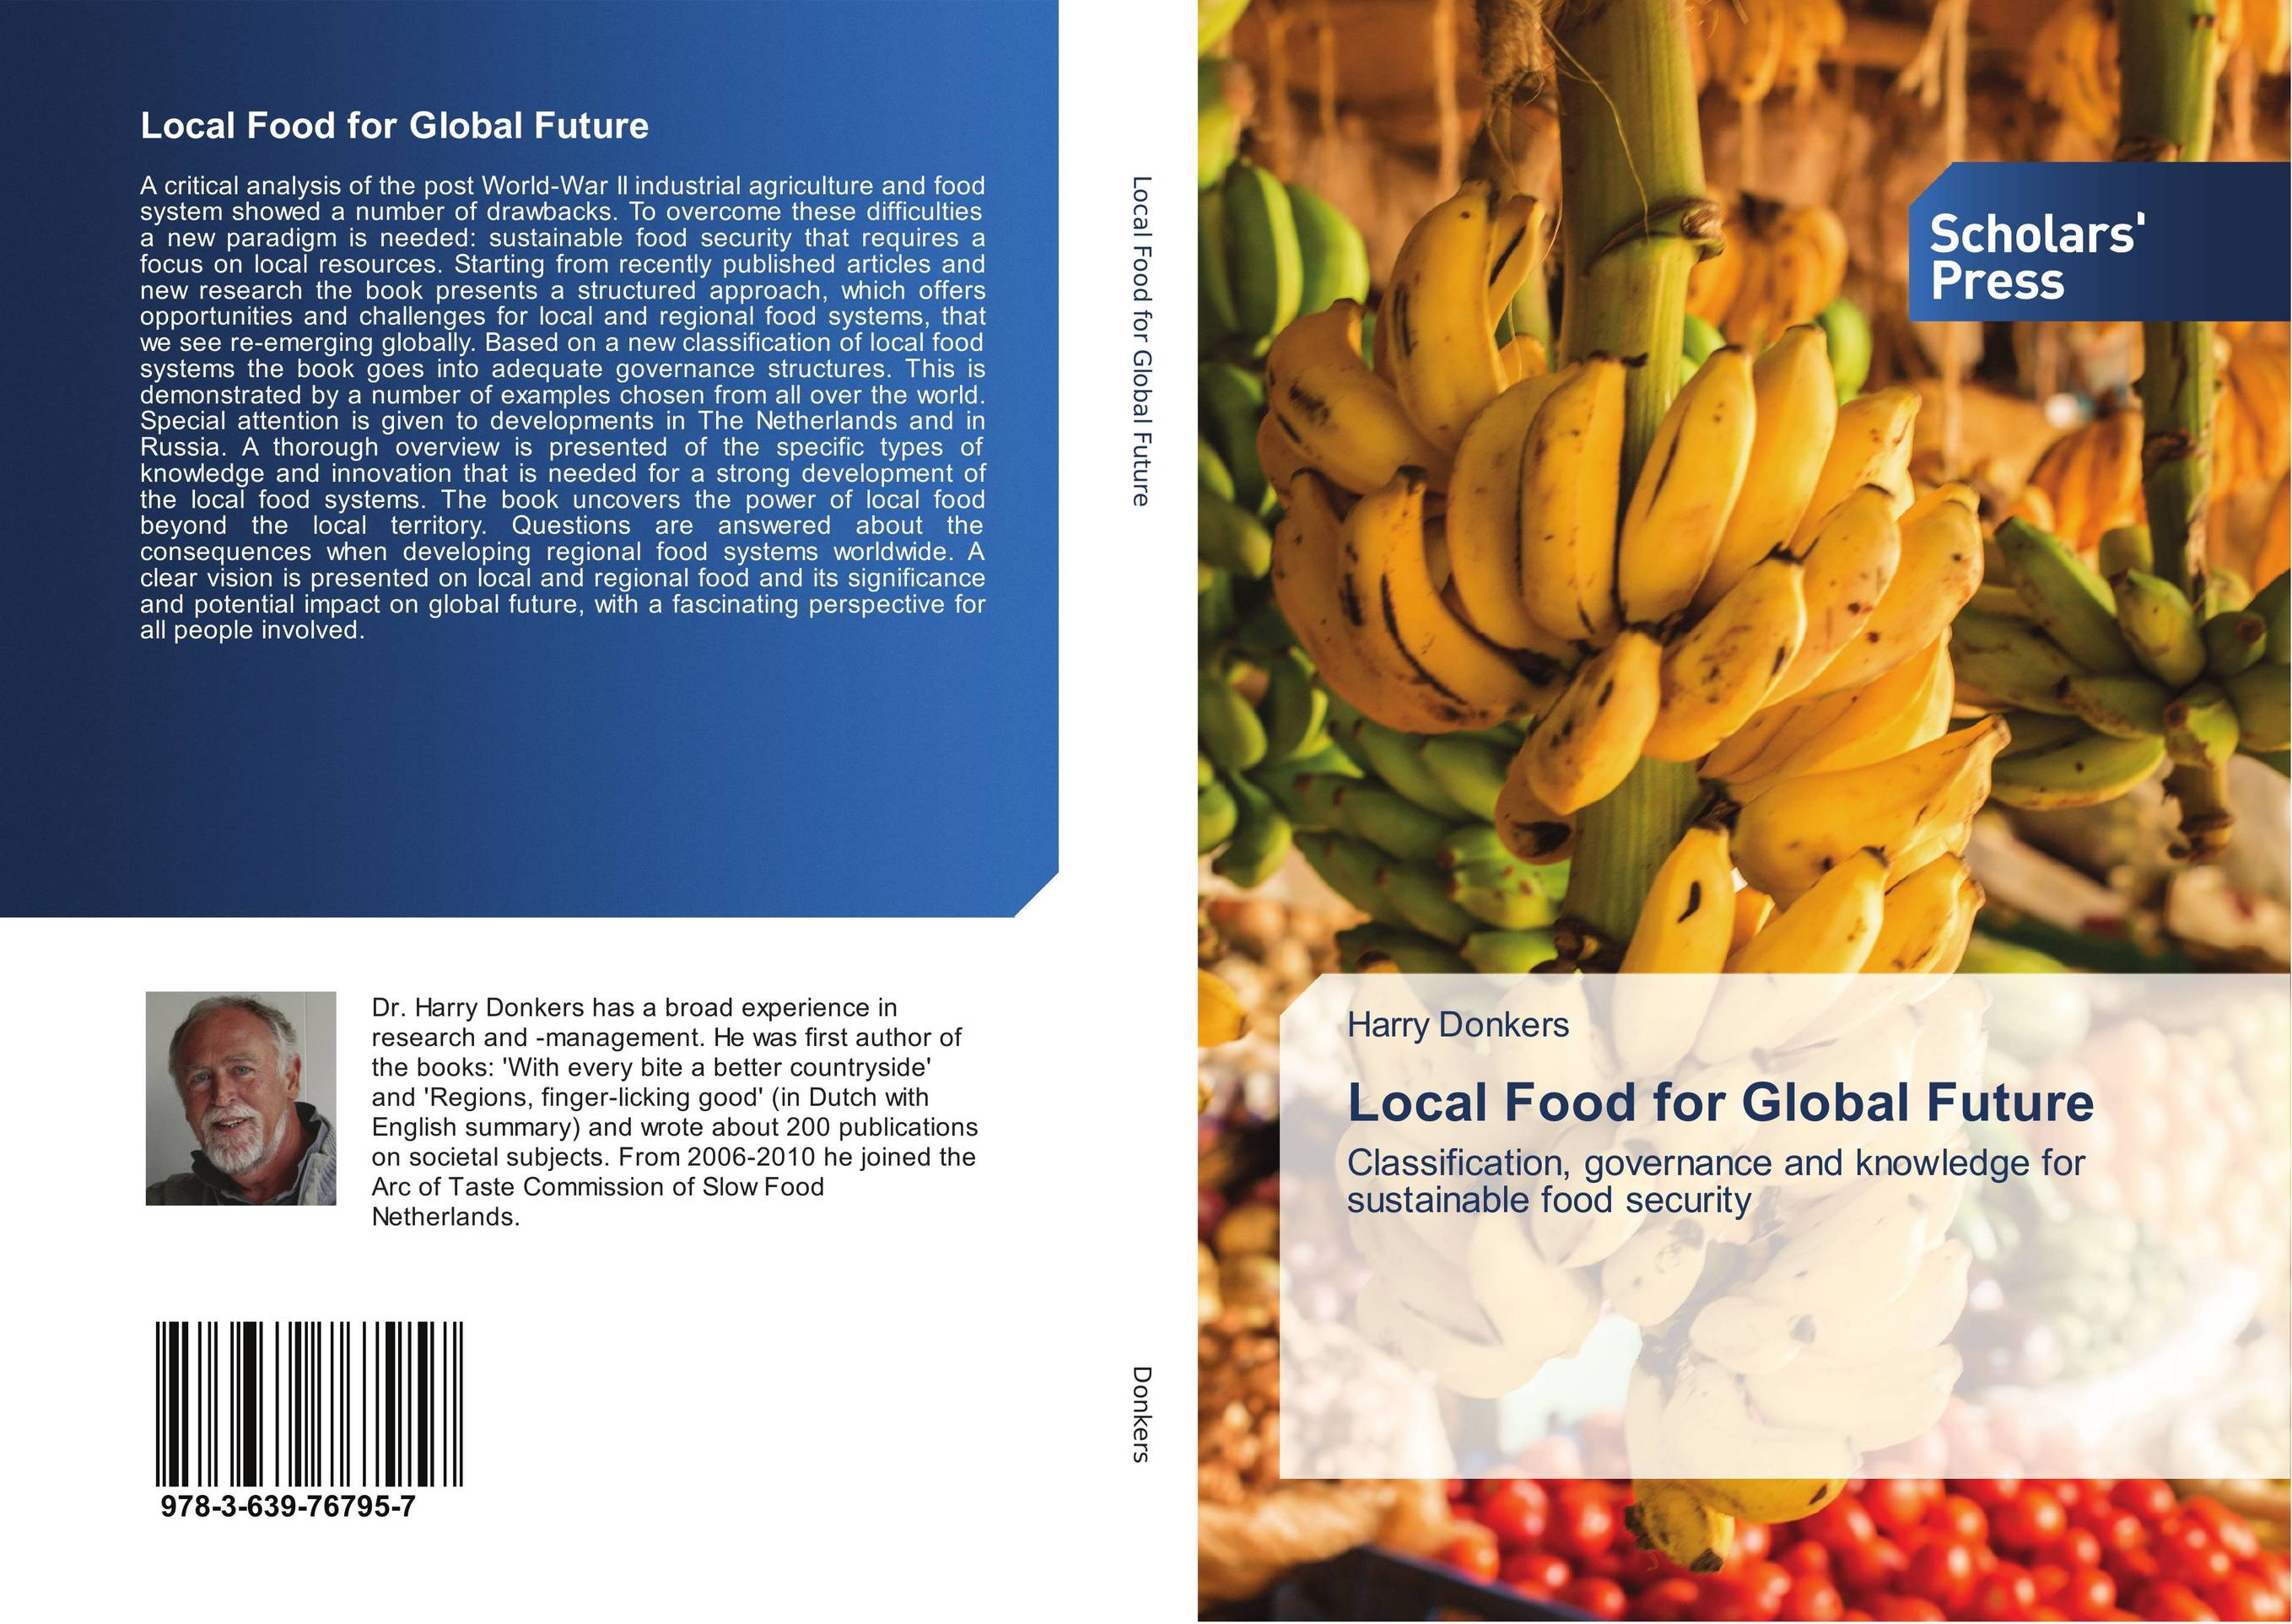 Local Food for Global Future